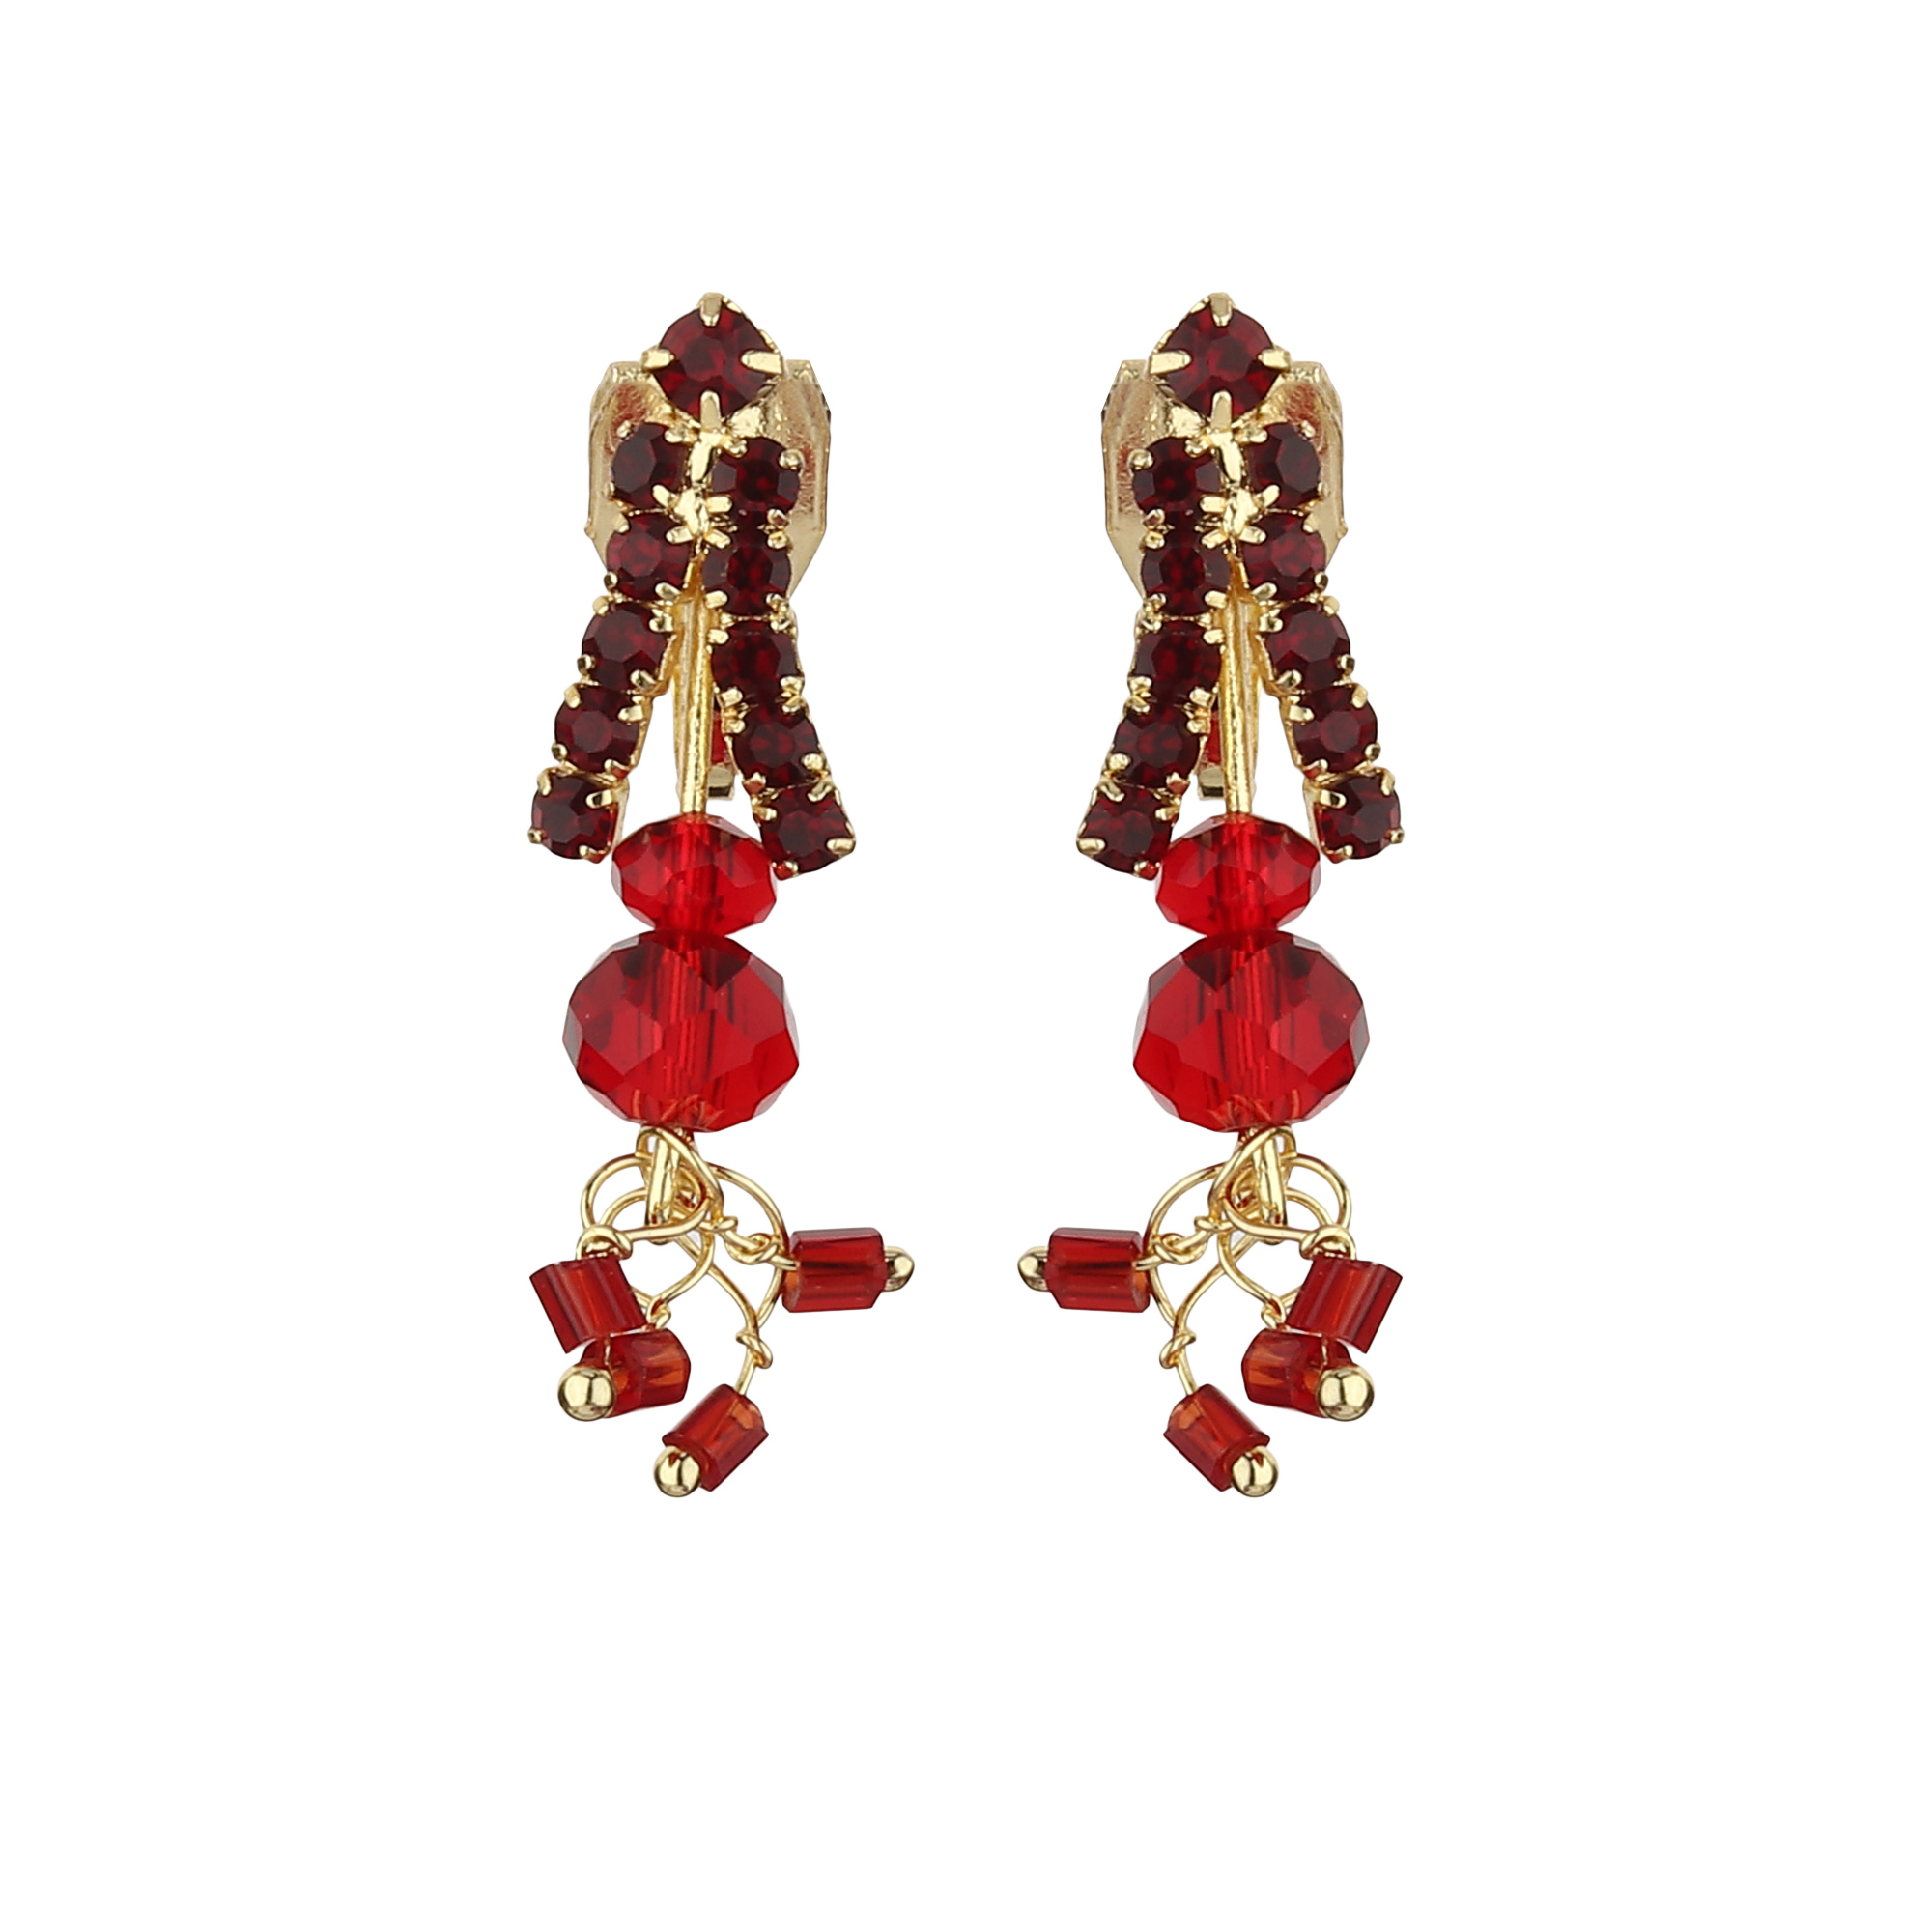 FirstBlush | FirstBlush Clip On Earrings for Non Piearced Ears for Women & Girls; Plating: Gold; Color: Maroon; Size: 30 X 10mm; Wt.: 3gm. (MIEC104M145)